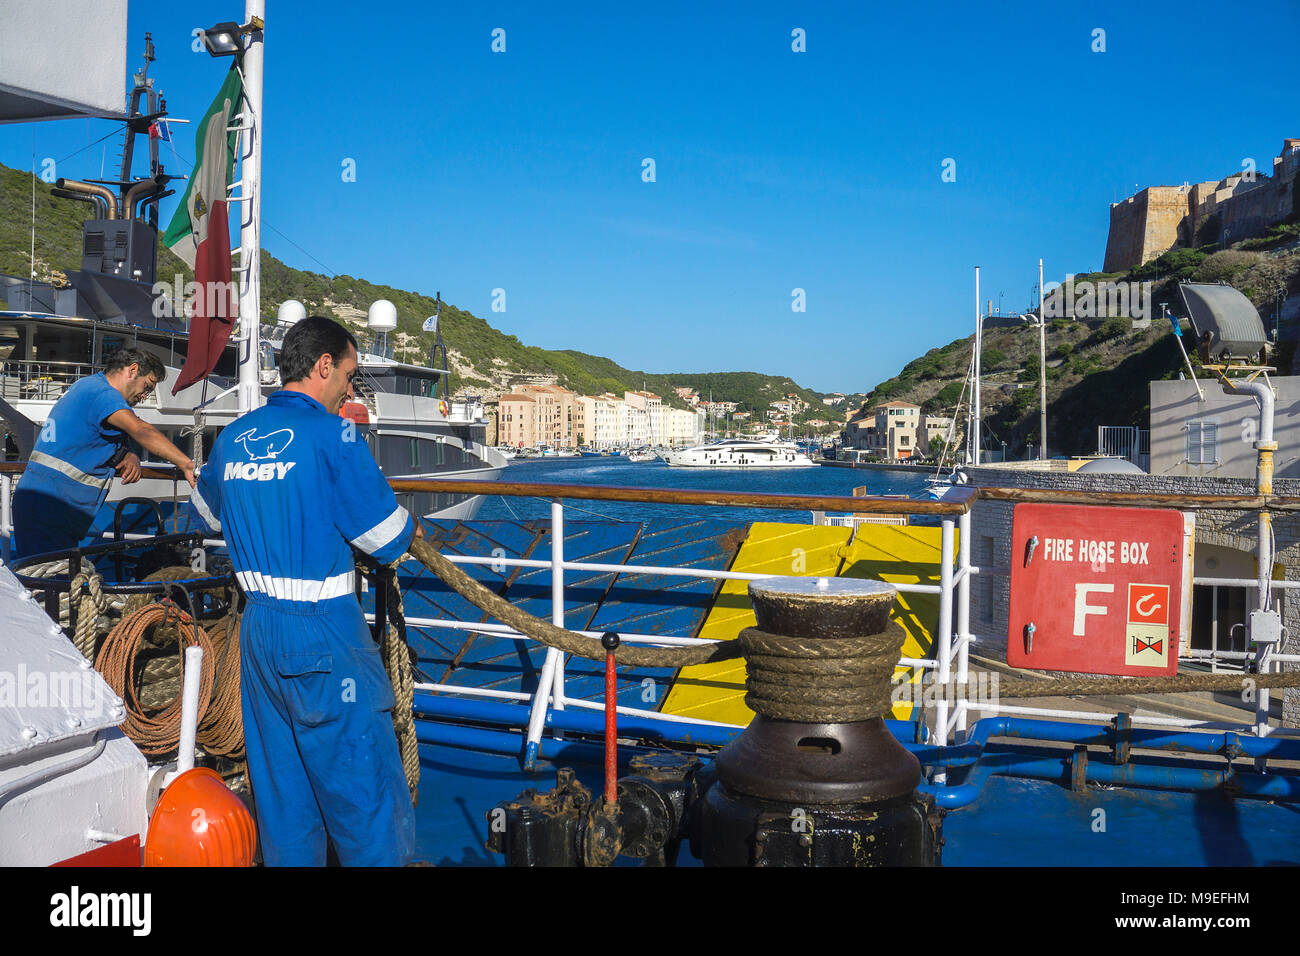 Ferry at fishery and Yacht harbour of Bonifacio, Corsica, France, Mediterranean, Europe - Stock Image